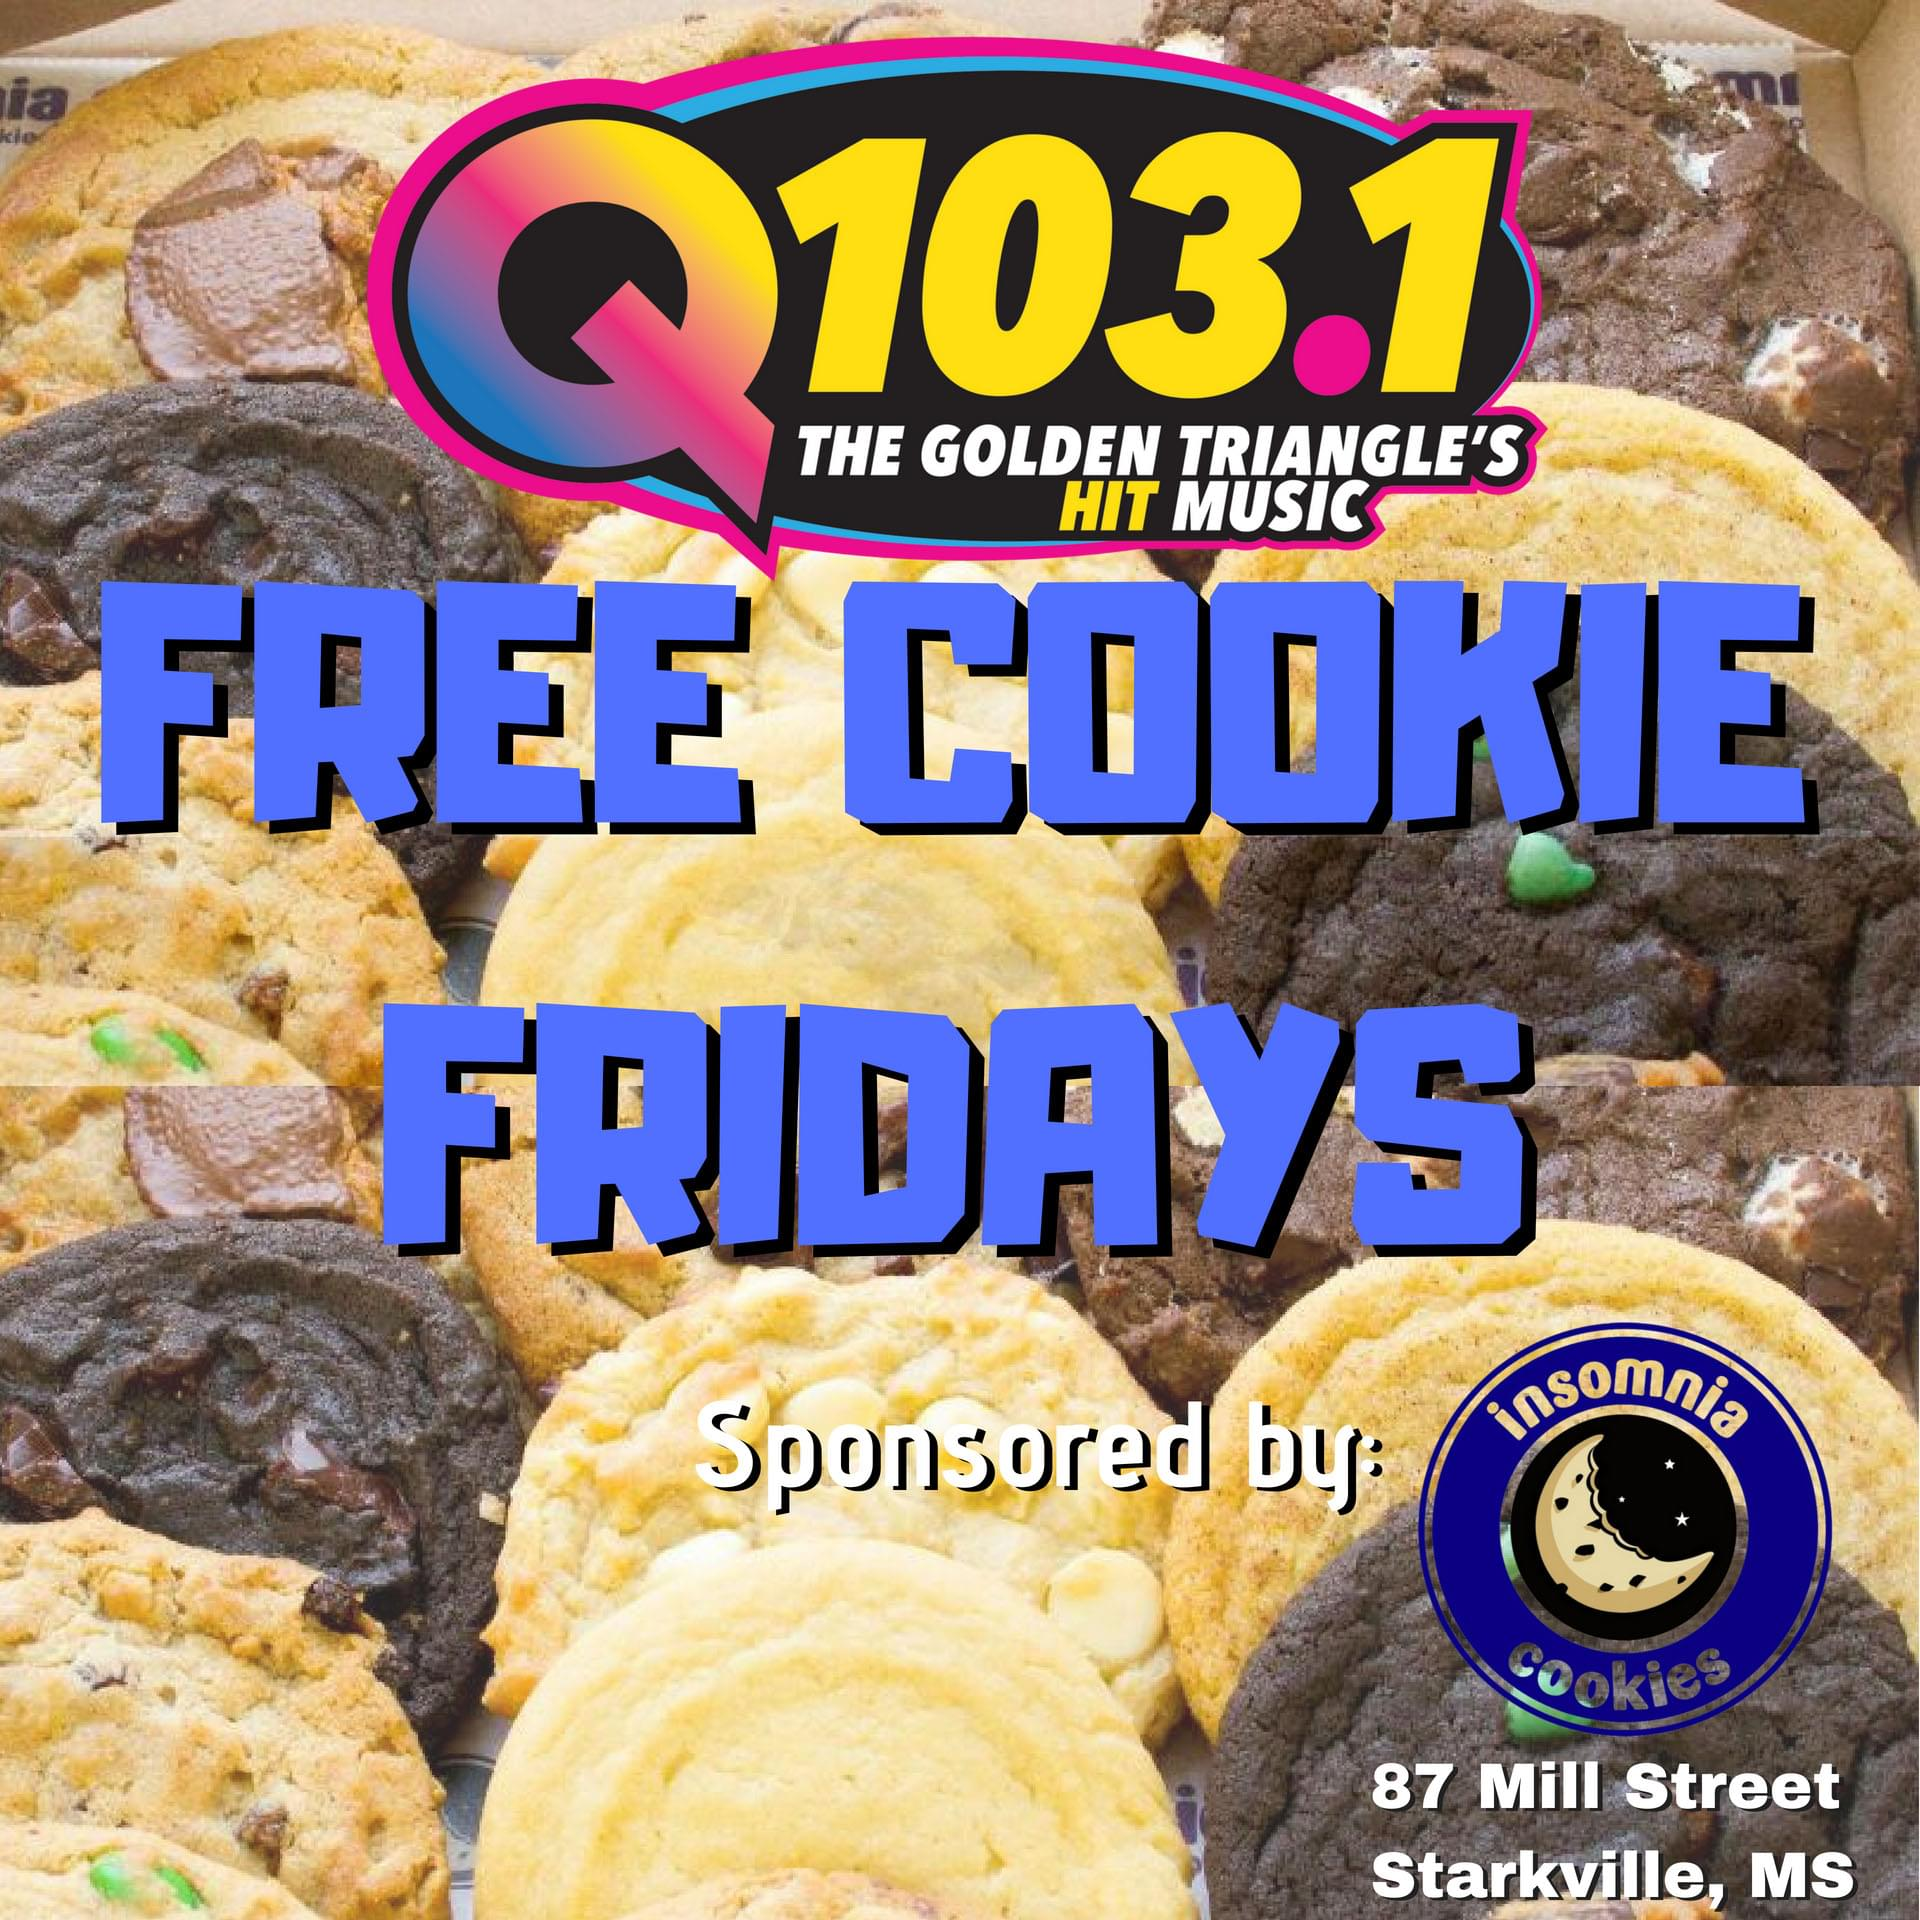 Q103.1 Free Cookie Fridays sponsored by Insomnia Cookies of Starkville